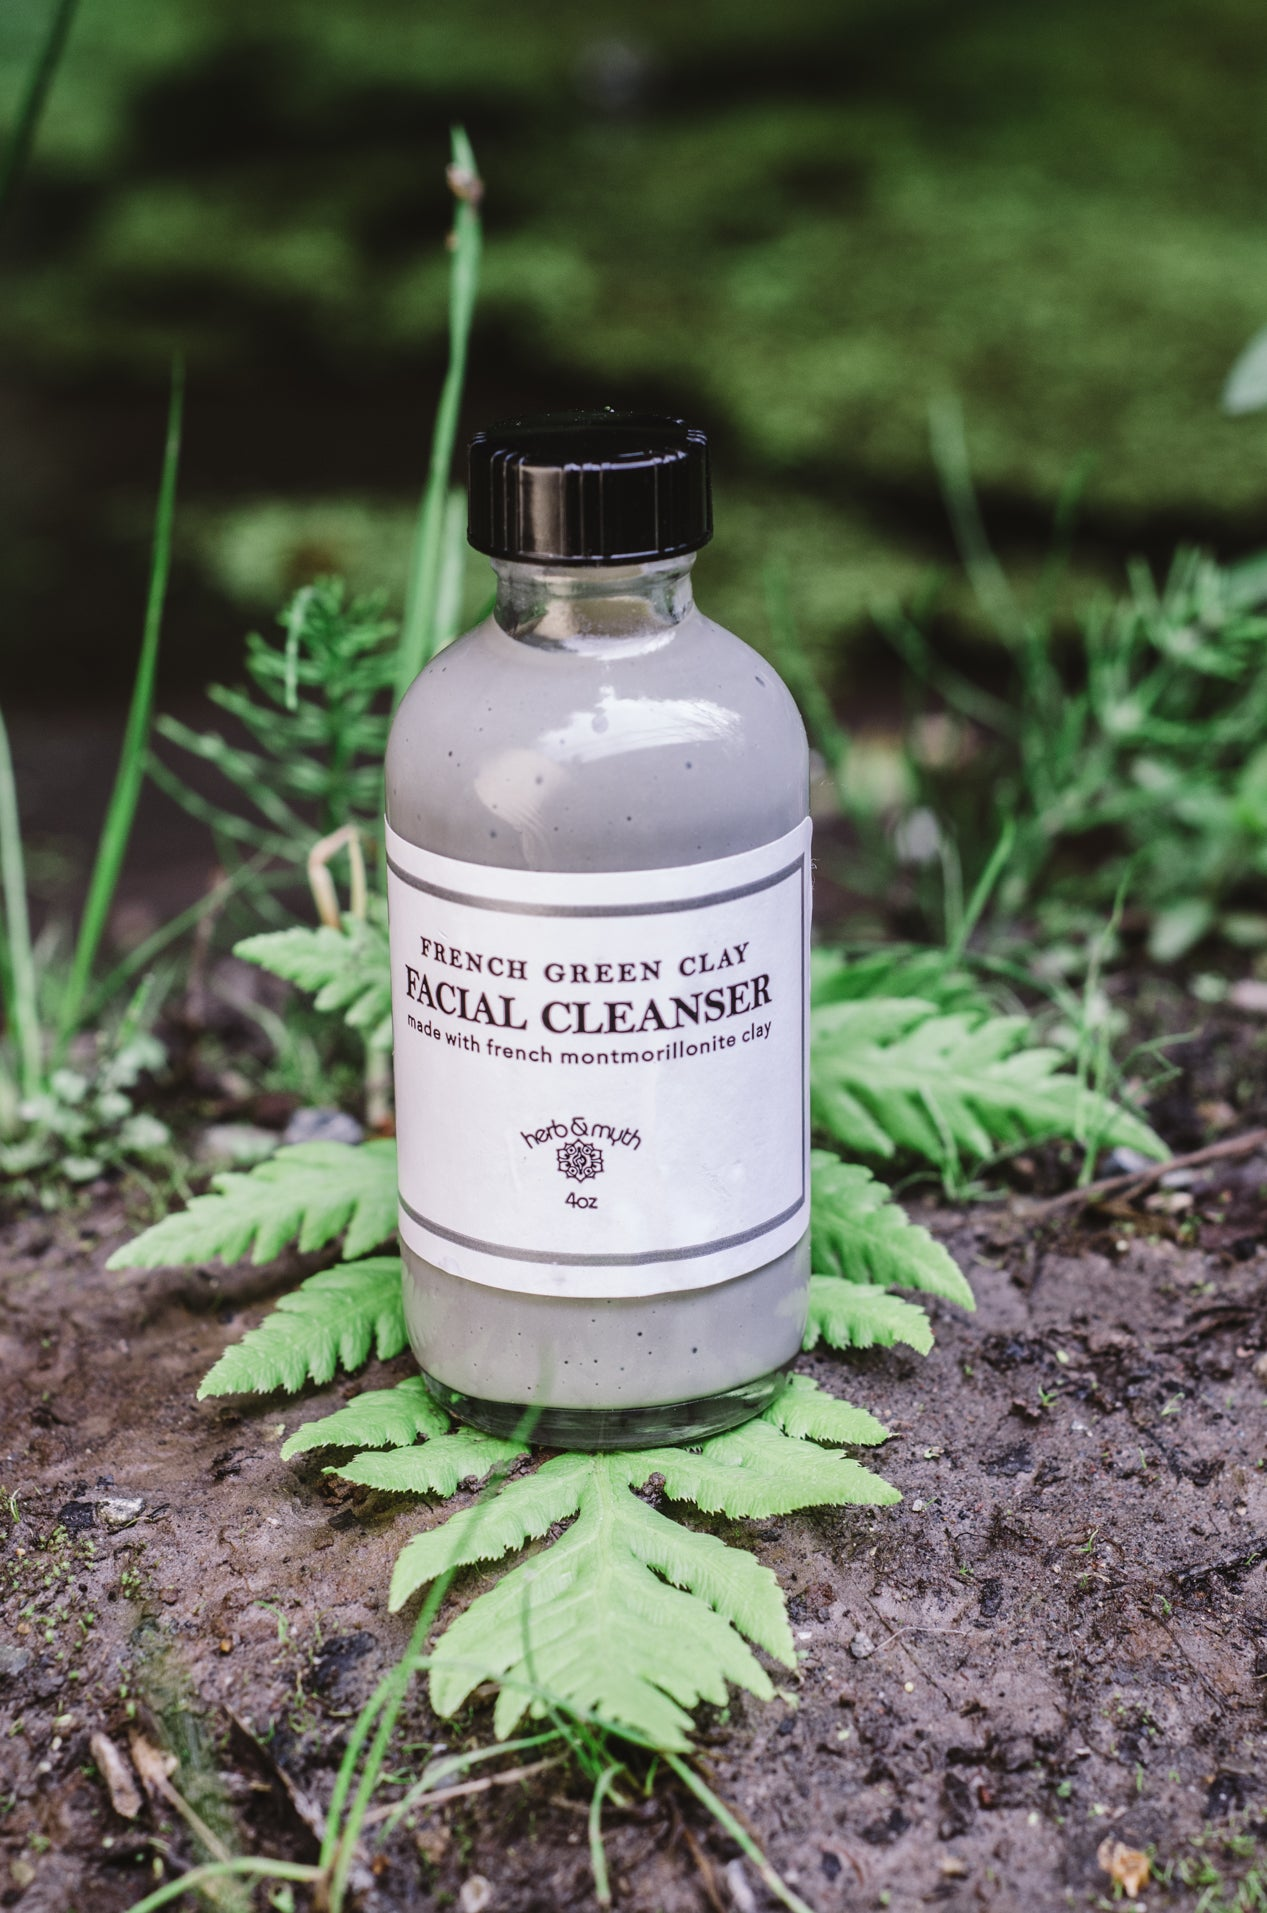 French Green Clay Facial Cleanser